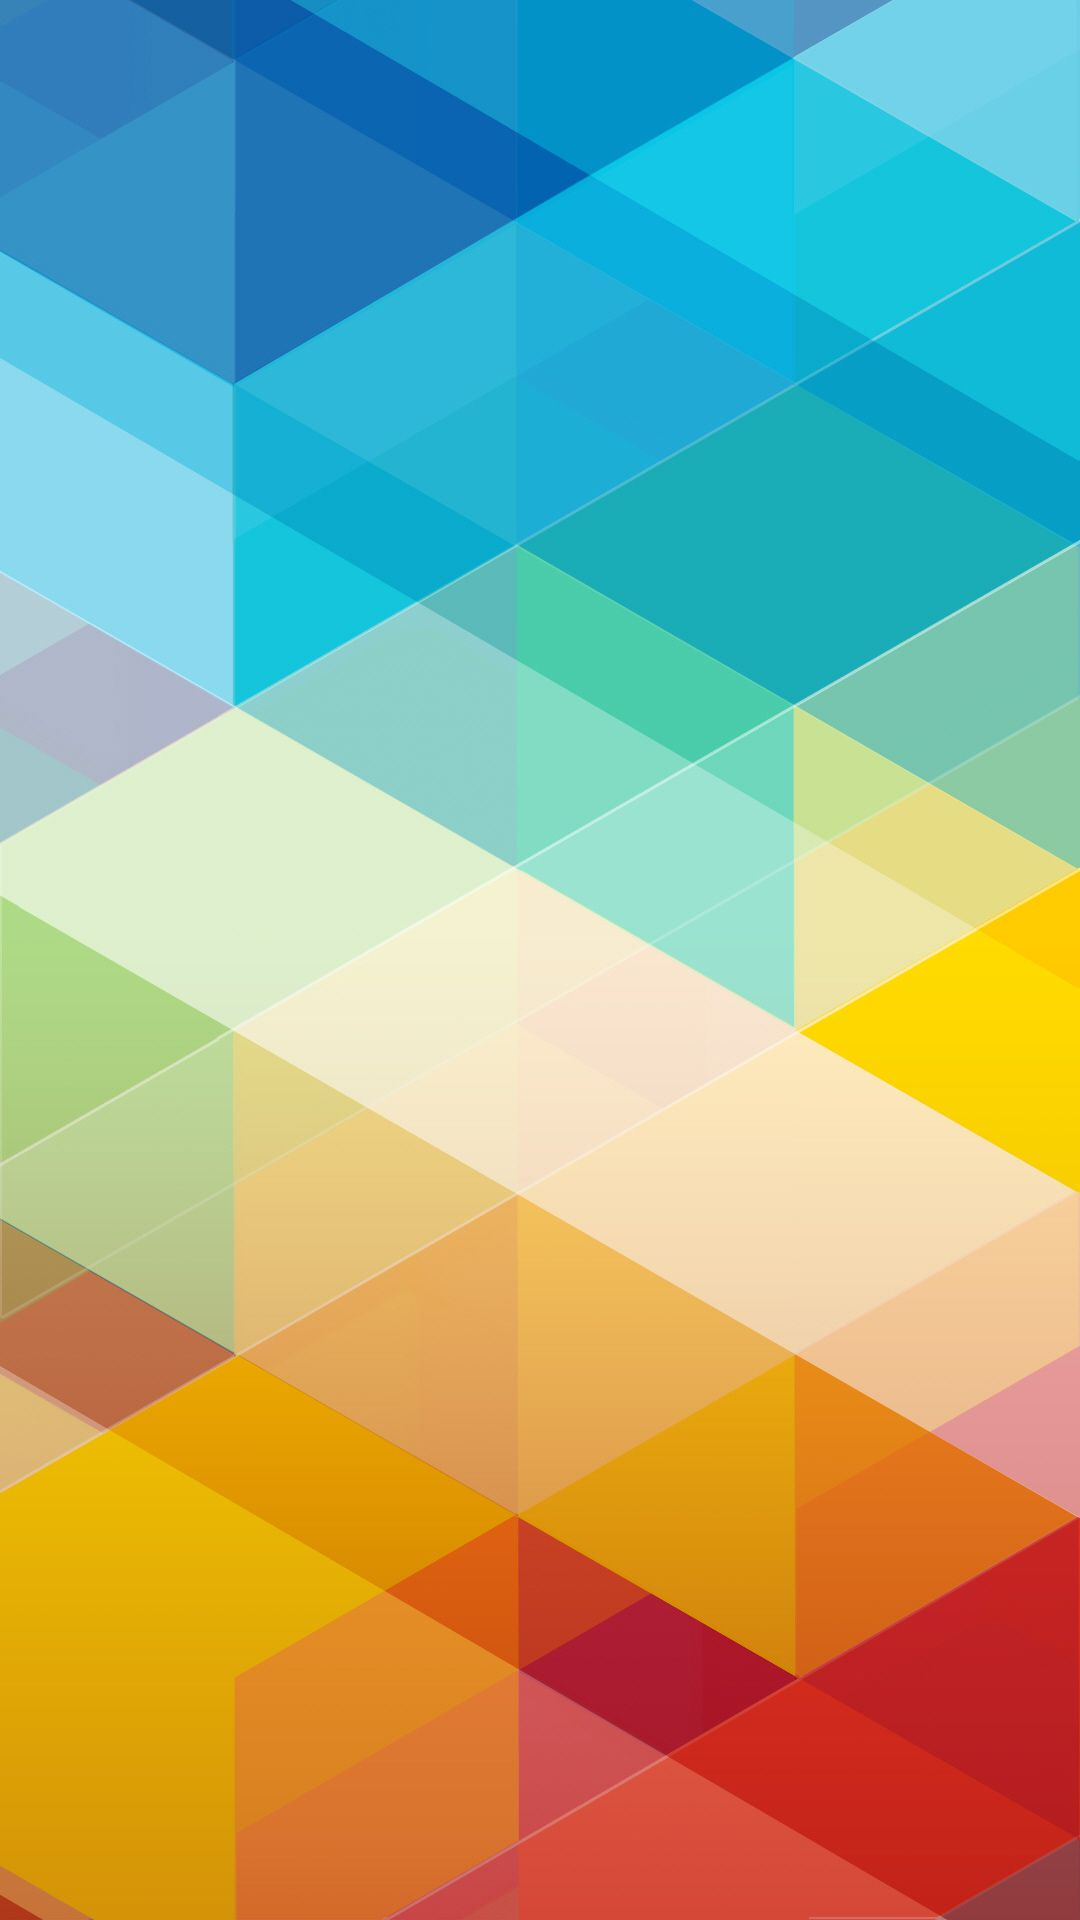 Hd 3d Wallpaper Mobile9 Colourful Triangles Color Of Rainbow In Abstract Tap To